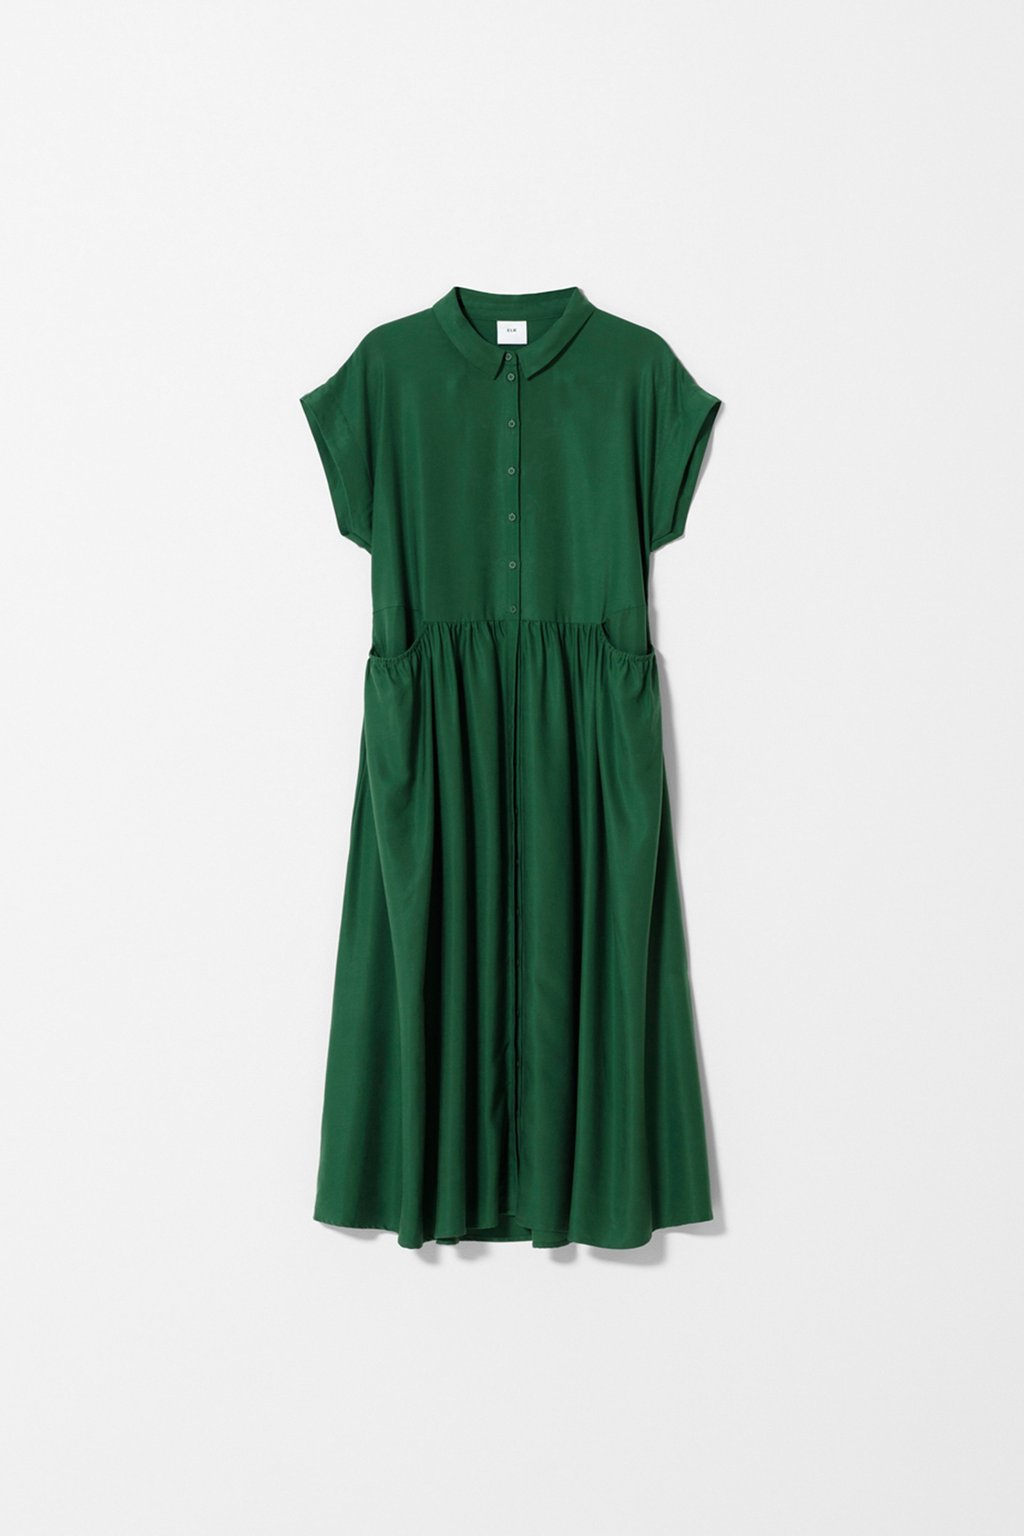 Elk Garden Dress - Pesto